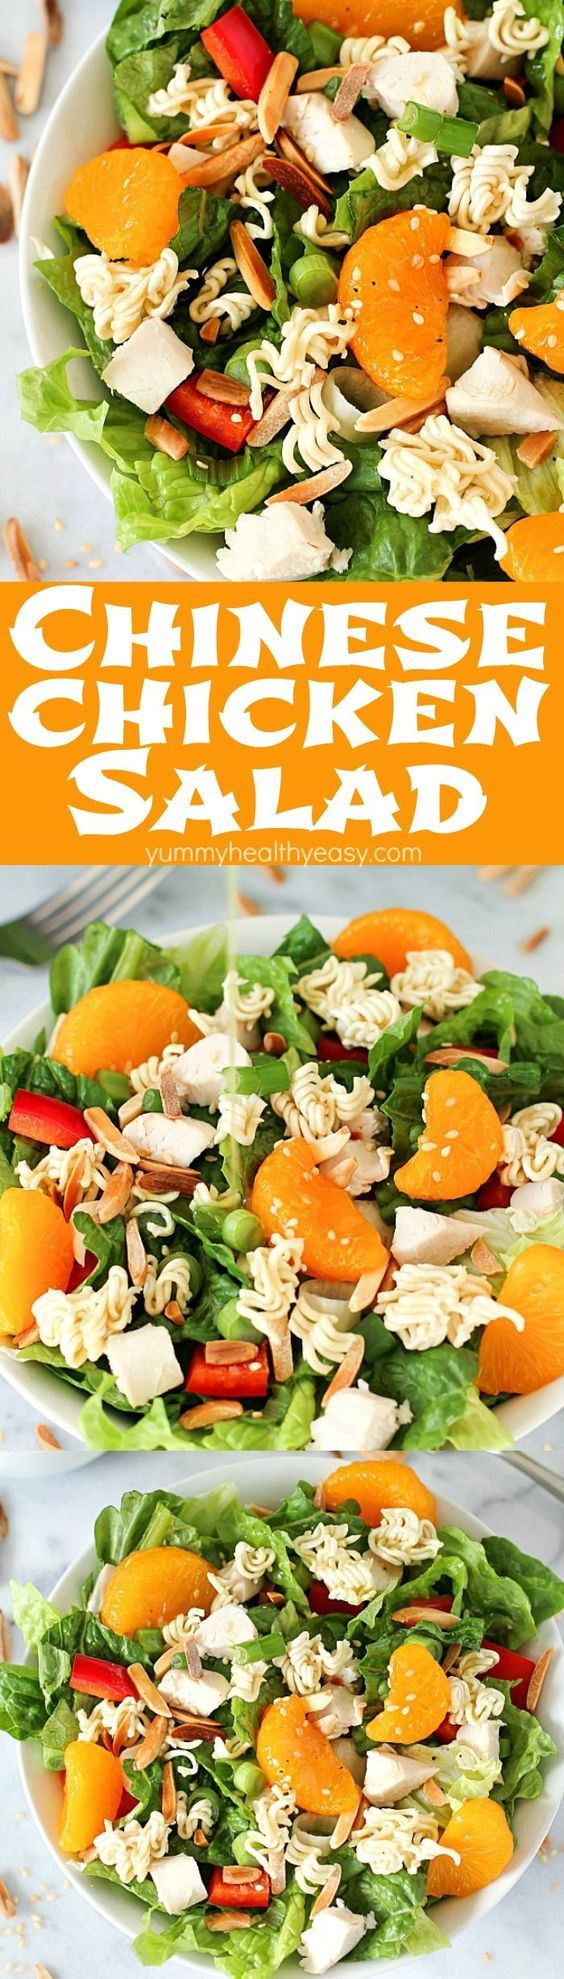 This Best EVER Chinese Chicken Salad is a healthy flavorful easy lunch or dinner salad recipe. It's easy to make but tastes like it's straight from a restaurant - this will become a favorite salad recipe at your house!